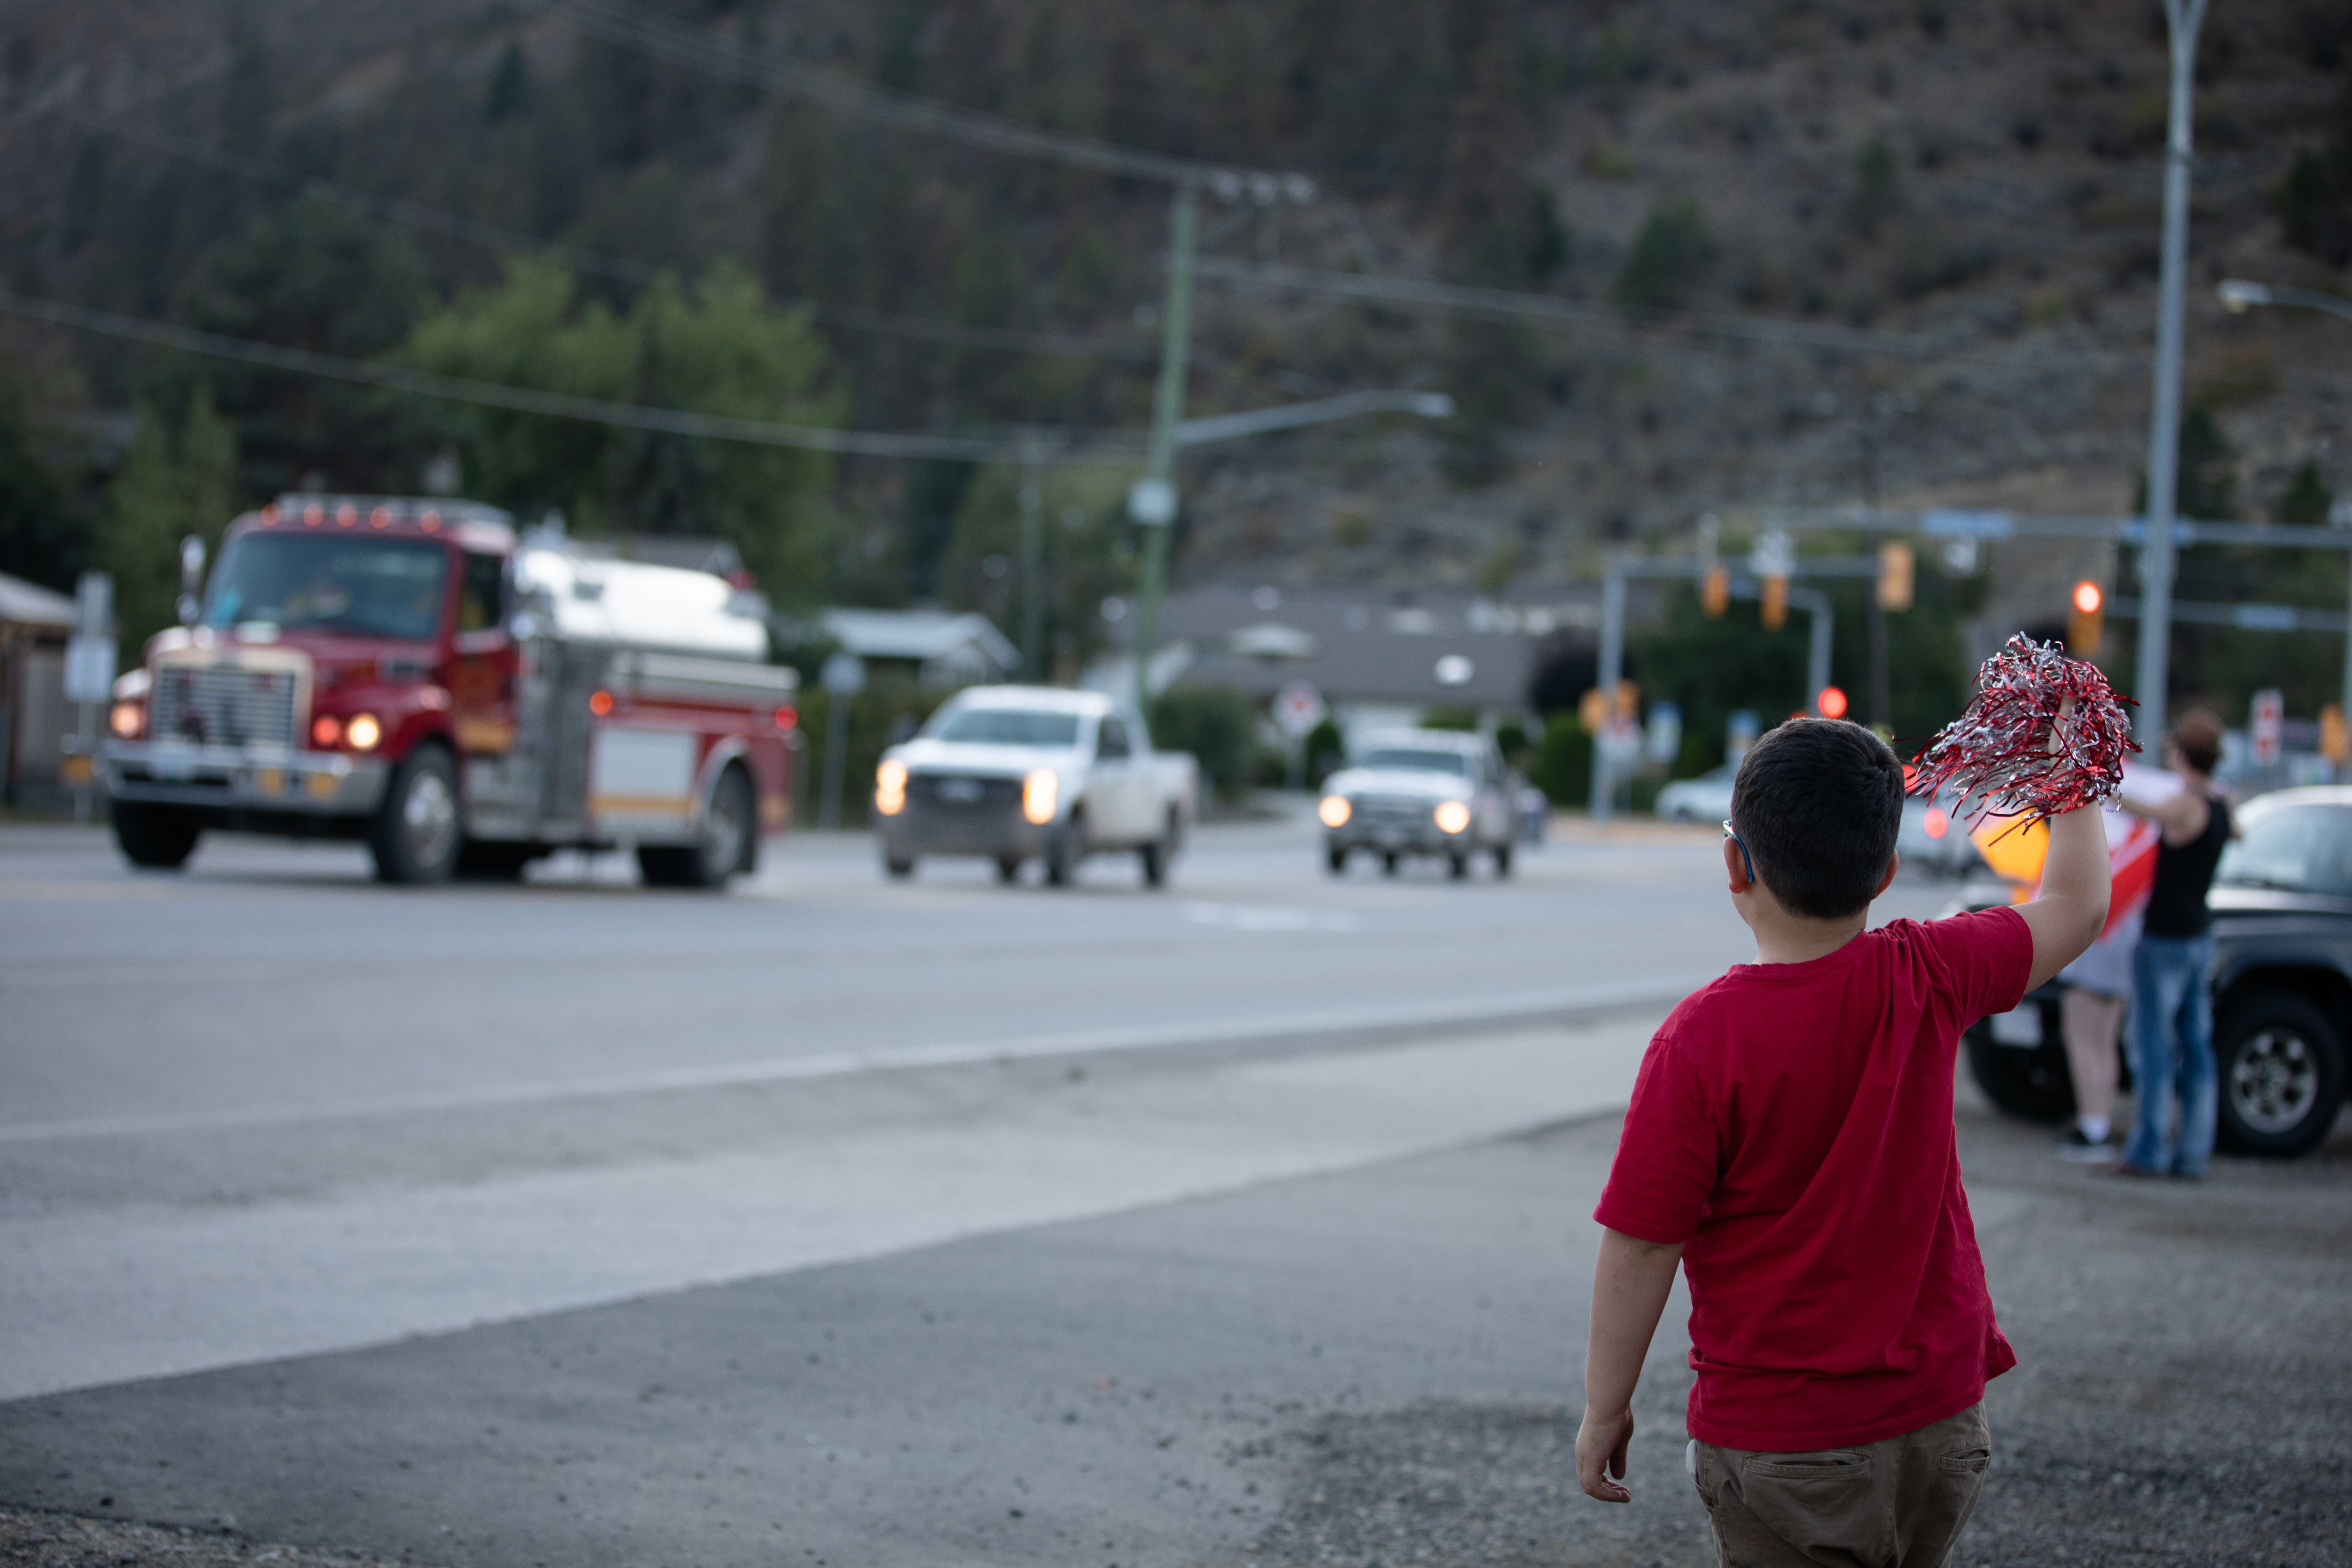 A young boy cheers firefighters as they return from their shifts in Vernon, B.C., on Sept. 2. (Maggie MacPherson/CBC)